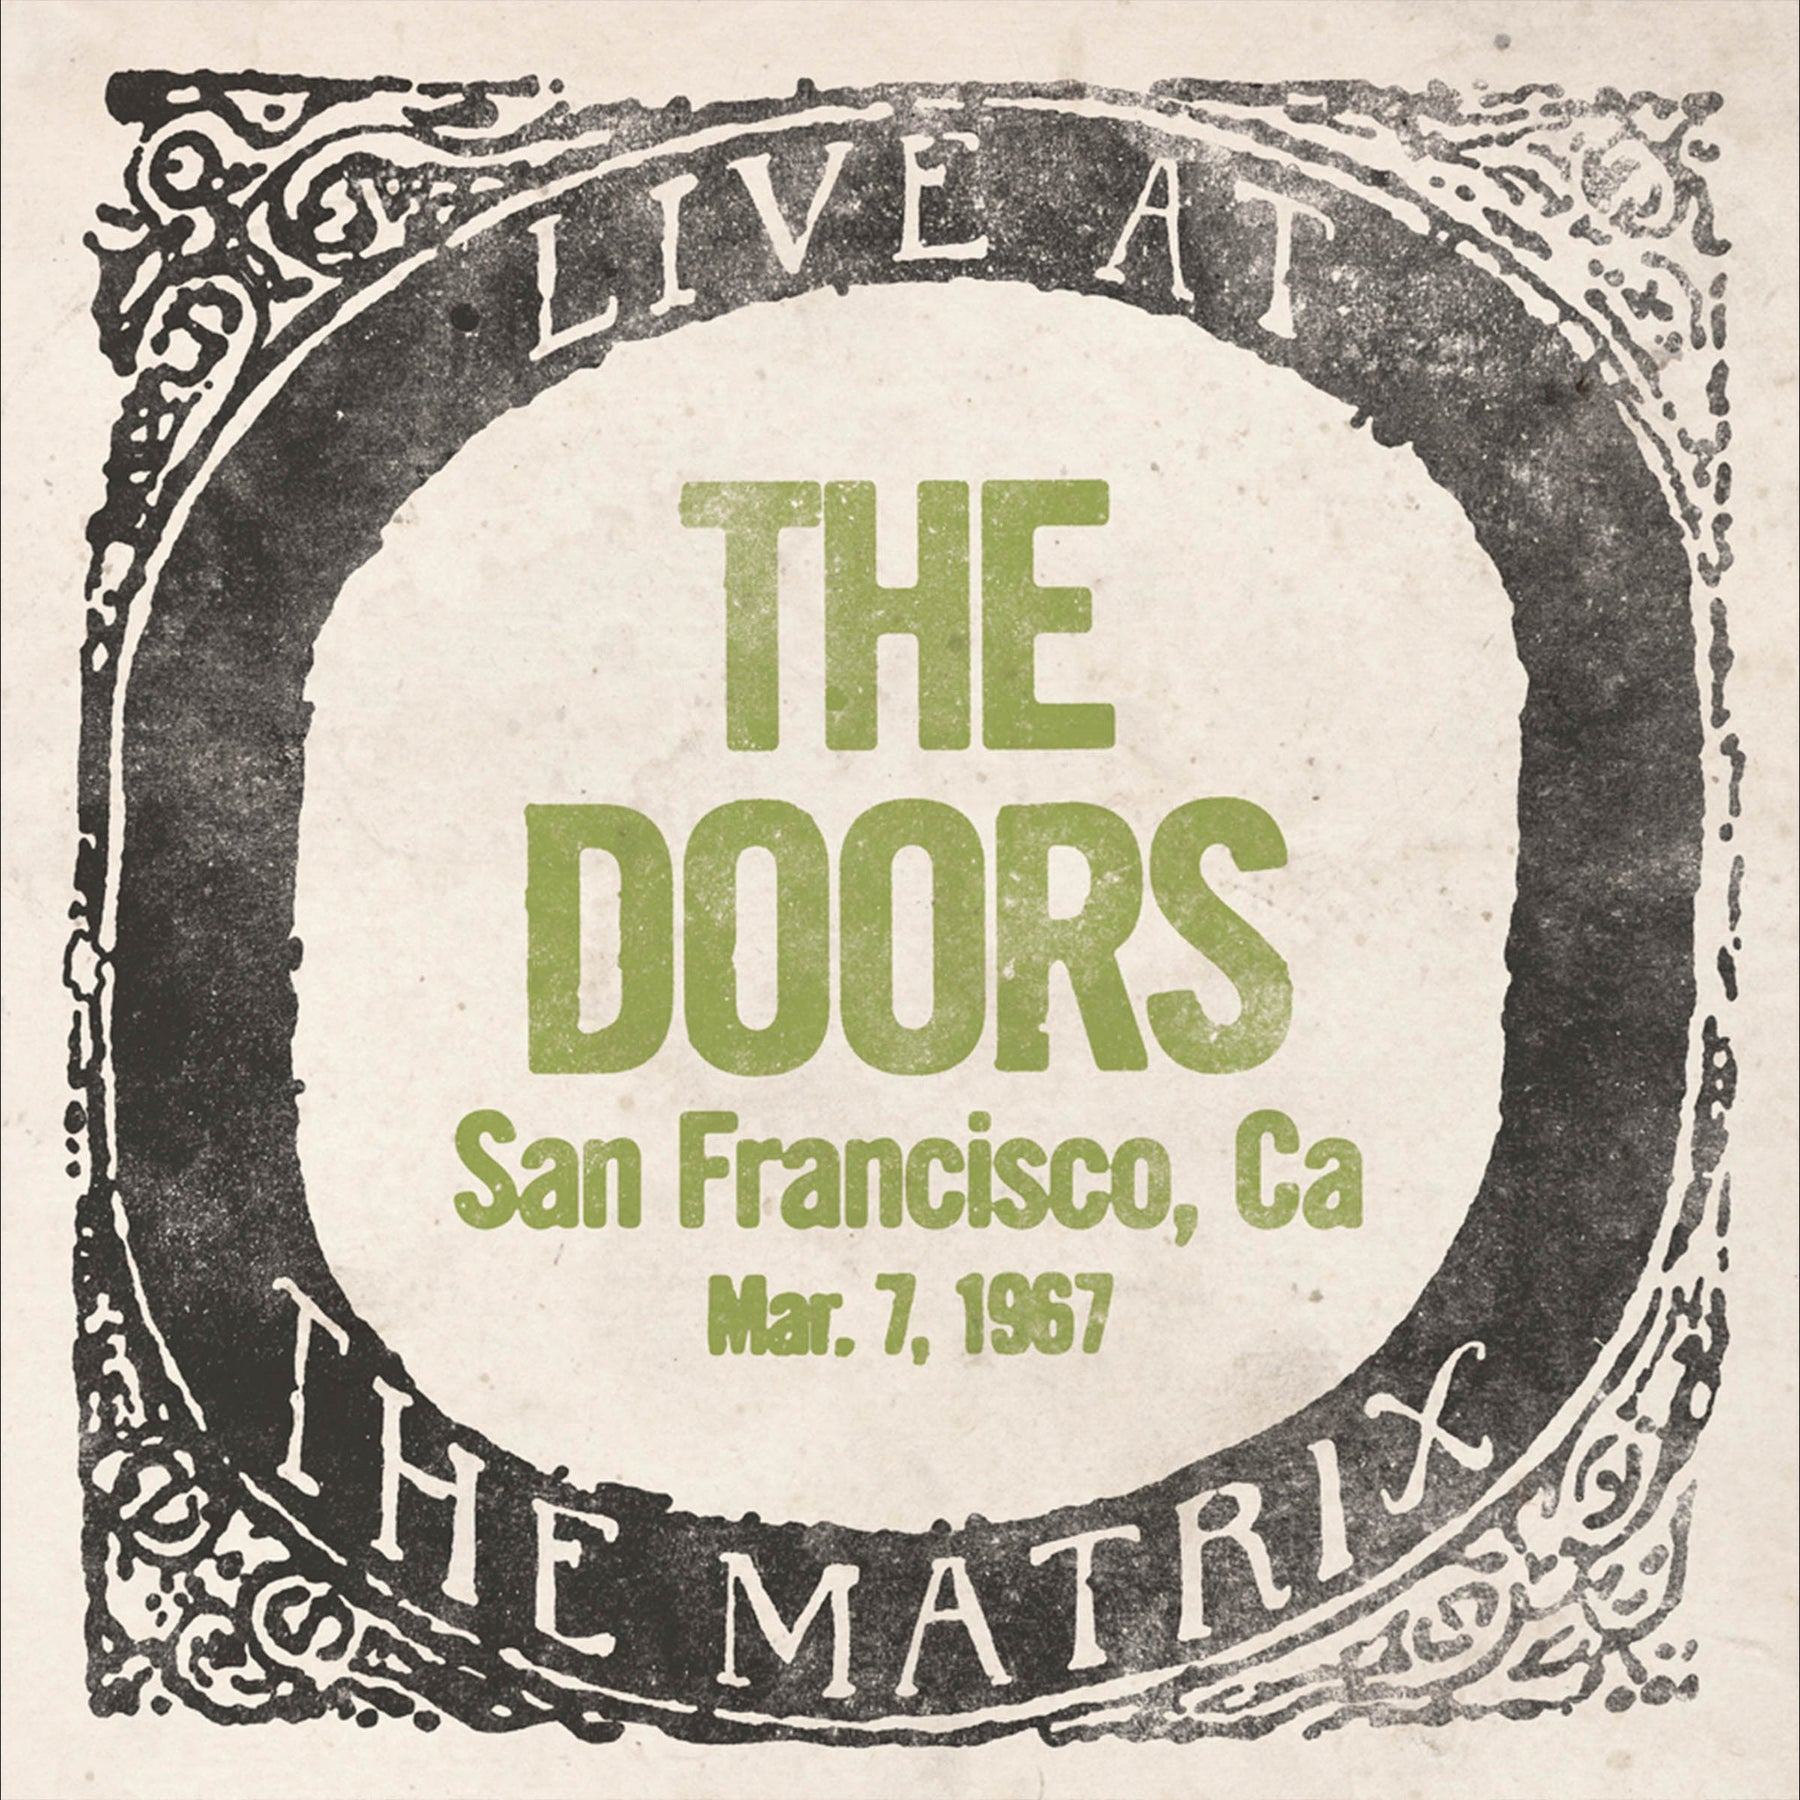 The Doors Live At The Matrix u002767 Vinyl LP (Record Store Day)  sc 1 st  Turntable Lab & The Doors: Live At The Matrix u002767 Vinyl LP (Record Store Day ...